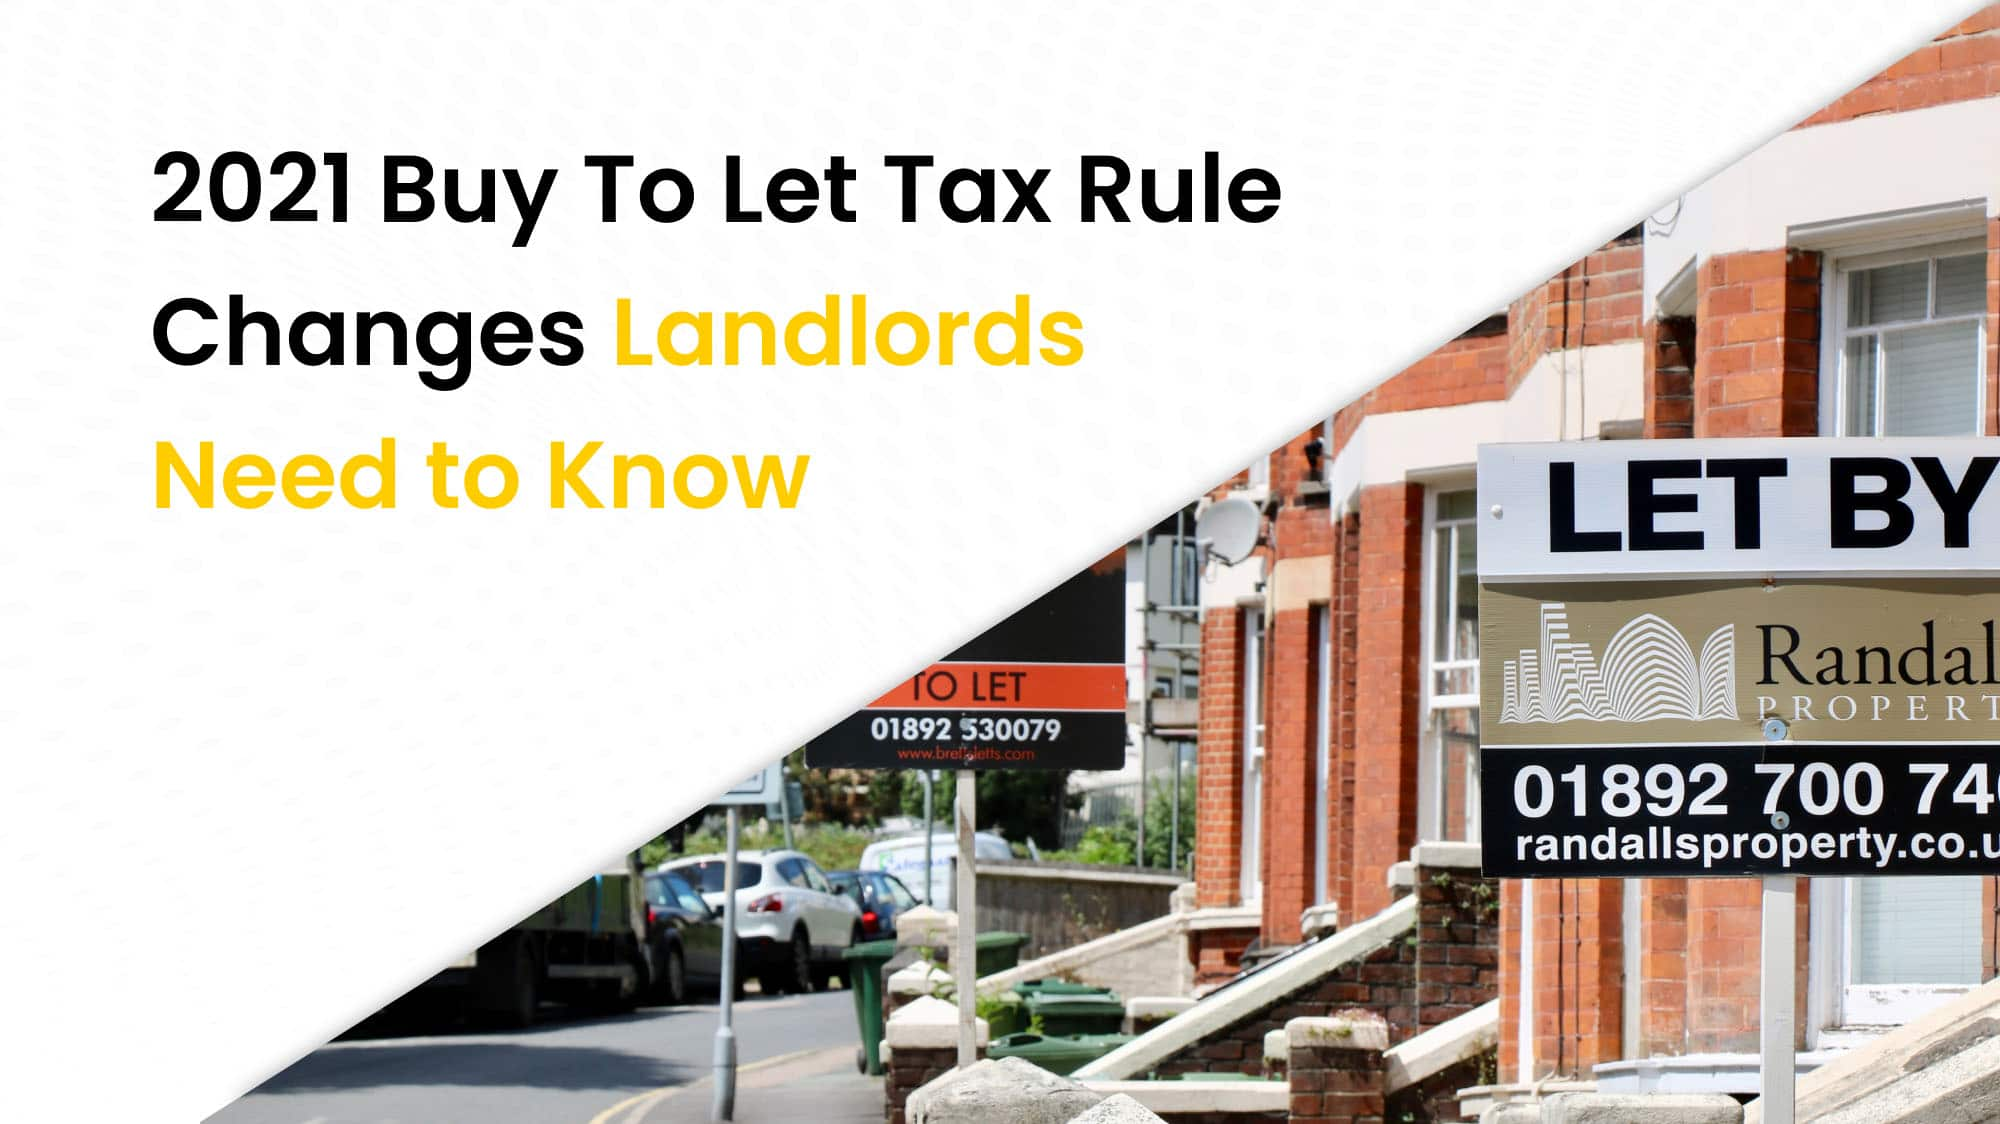 2021 buy to let tax rule chnages landlords need to know